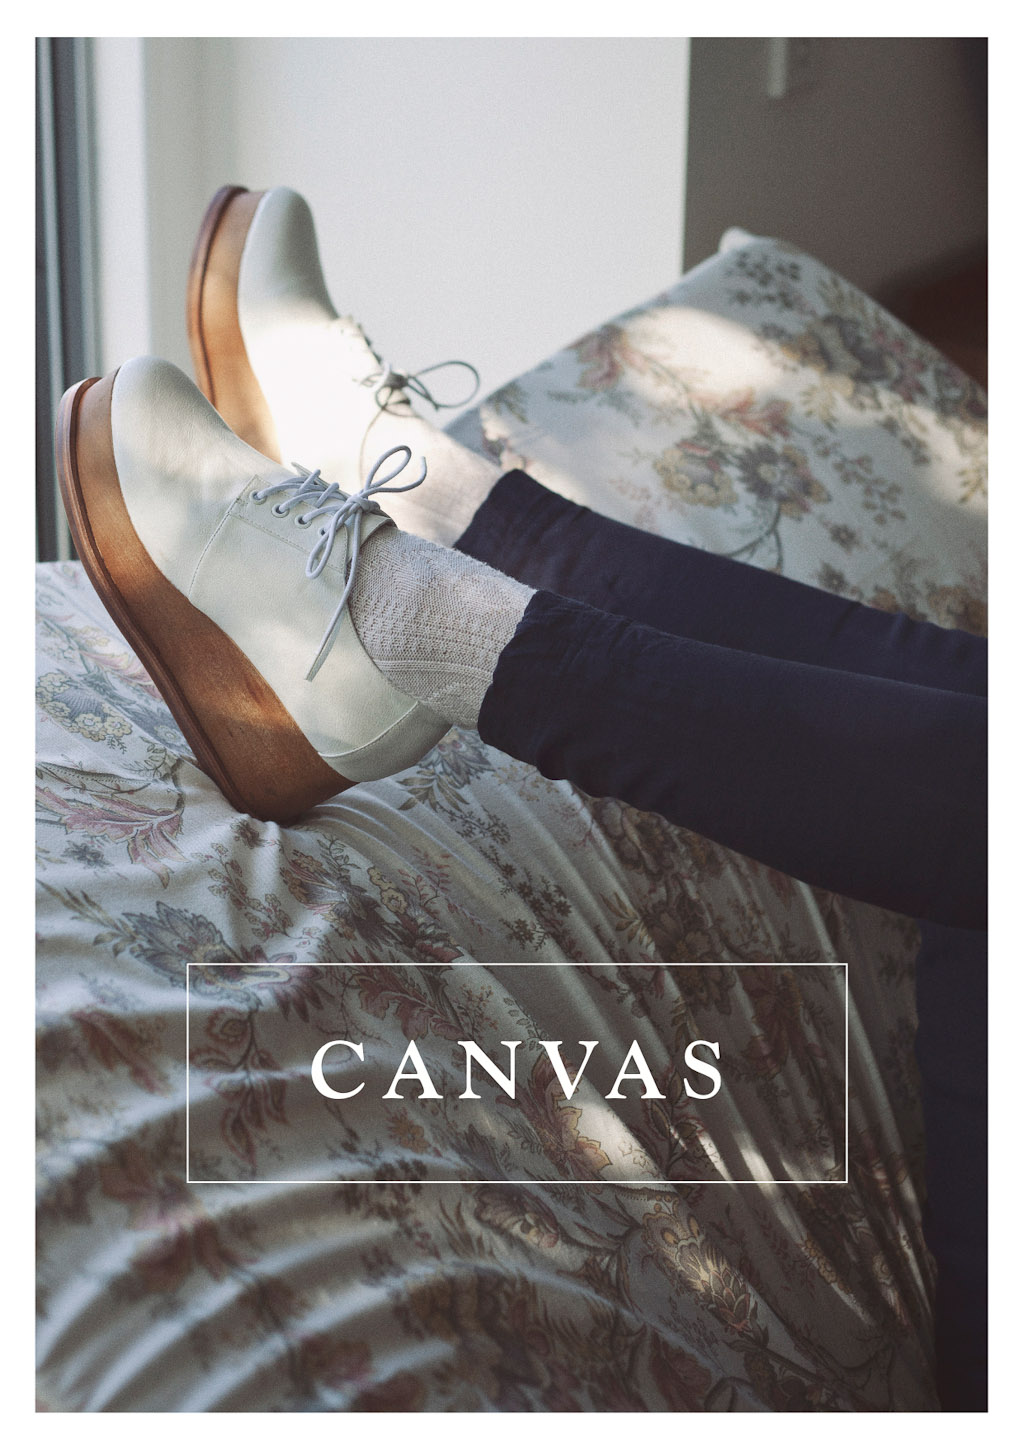 Canvas-layout-websize-1.jpg